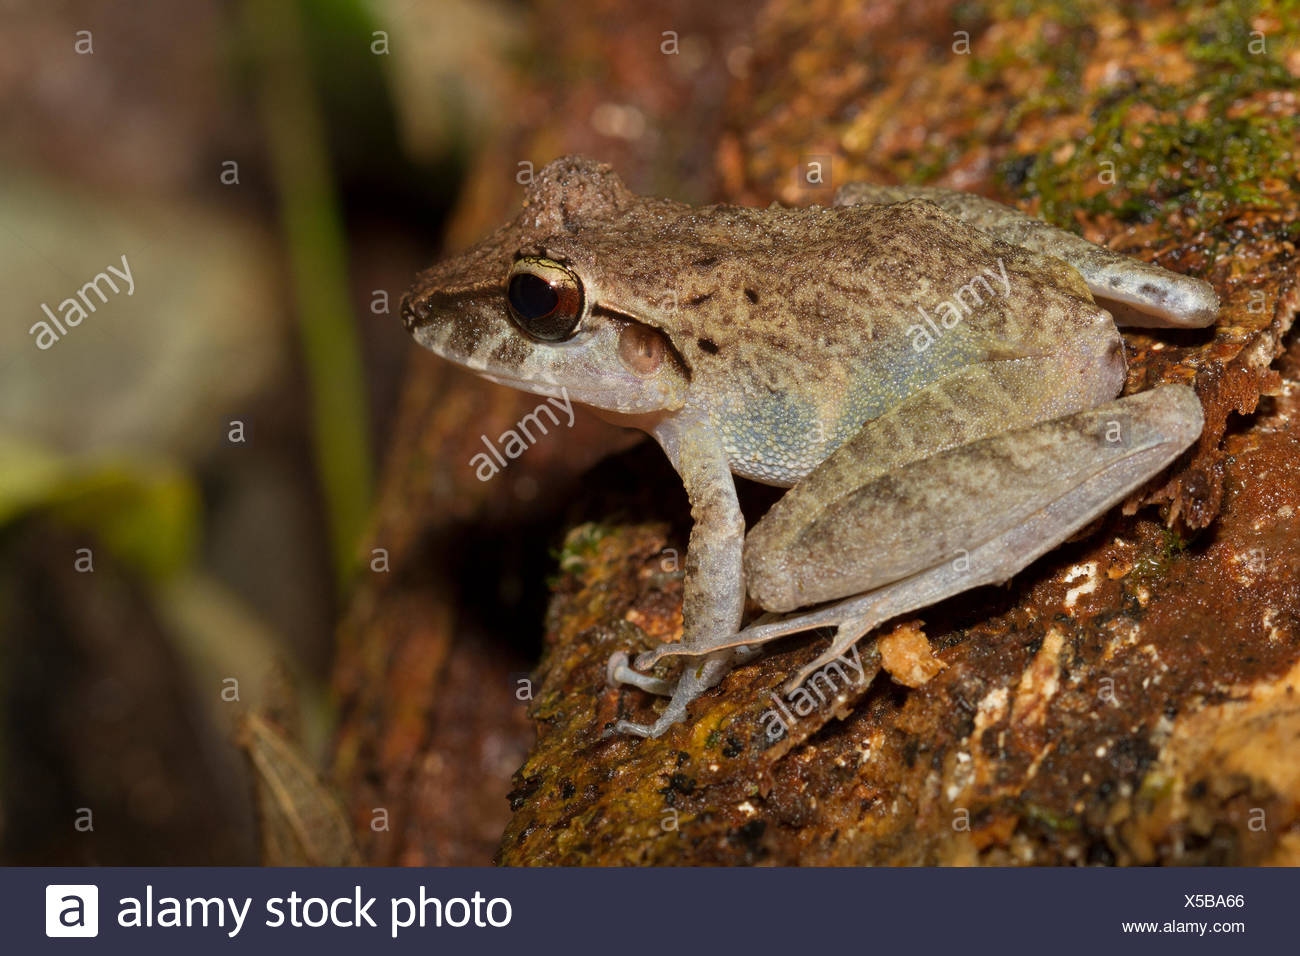 Common Rain Frog, Rana vaillanti, Breviceps acutirostris, Costa Rica, Central America, - Stock Image